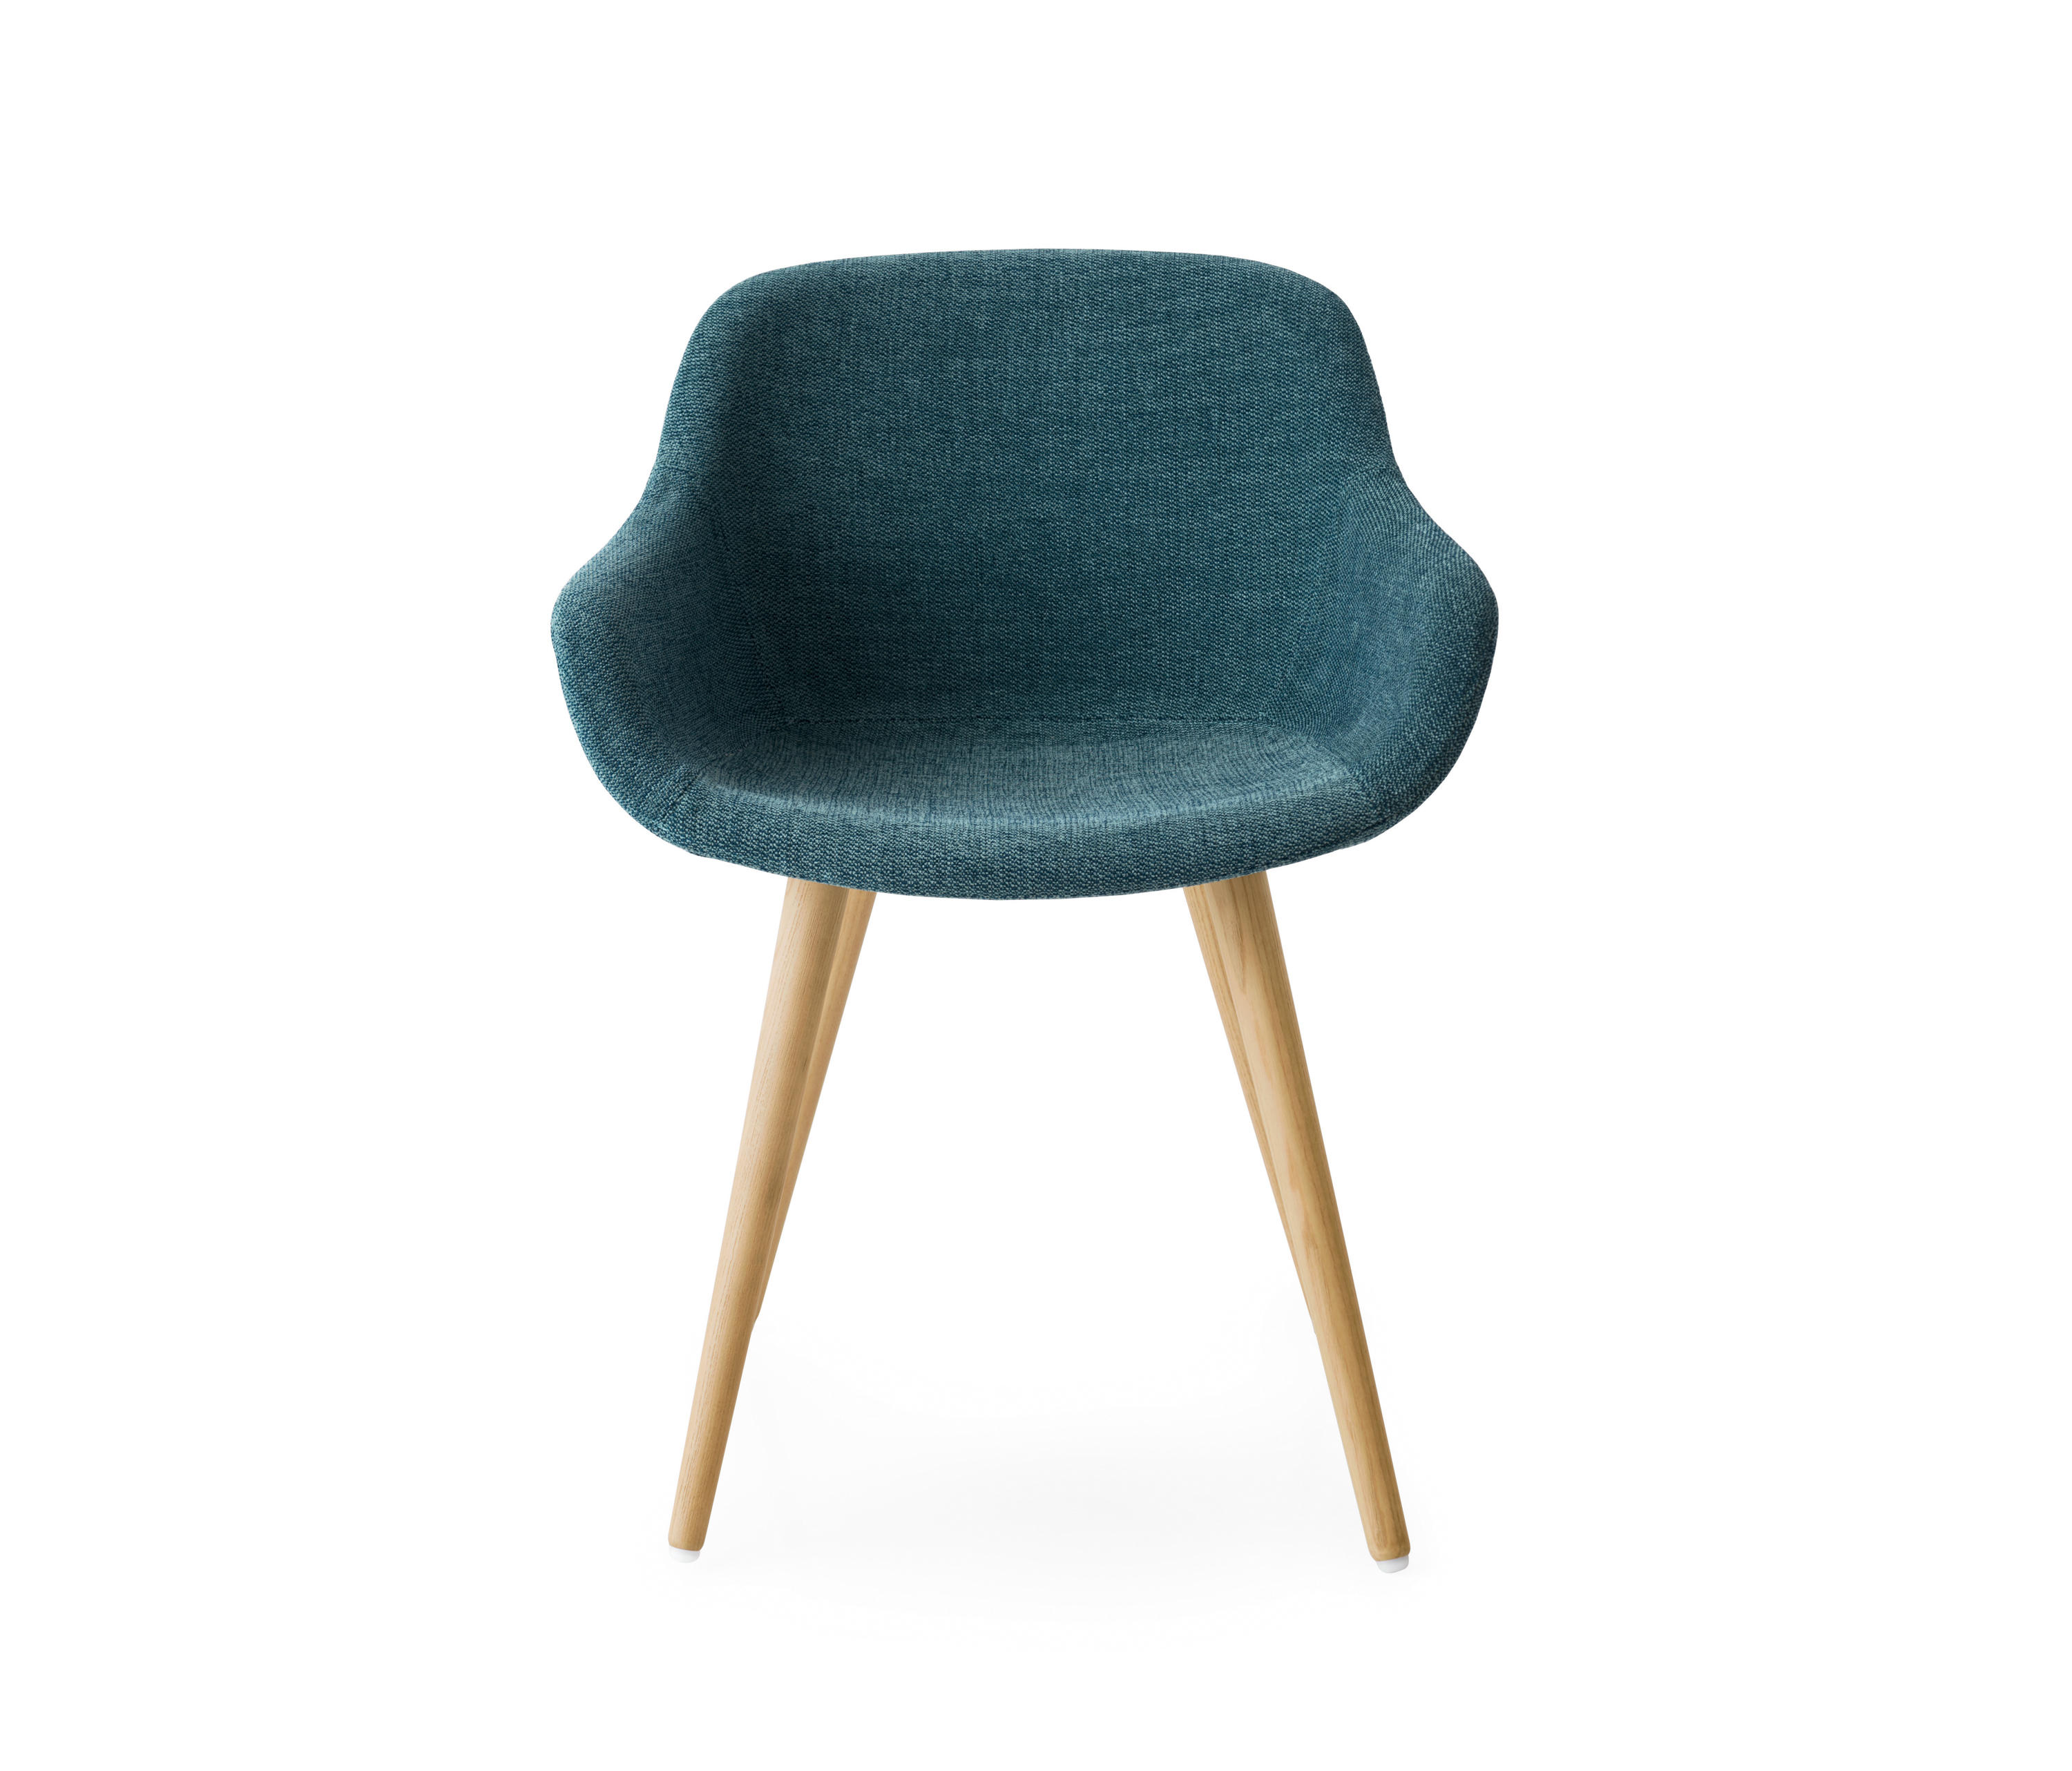 igloo chairs from calligaris architonic